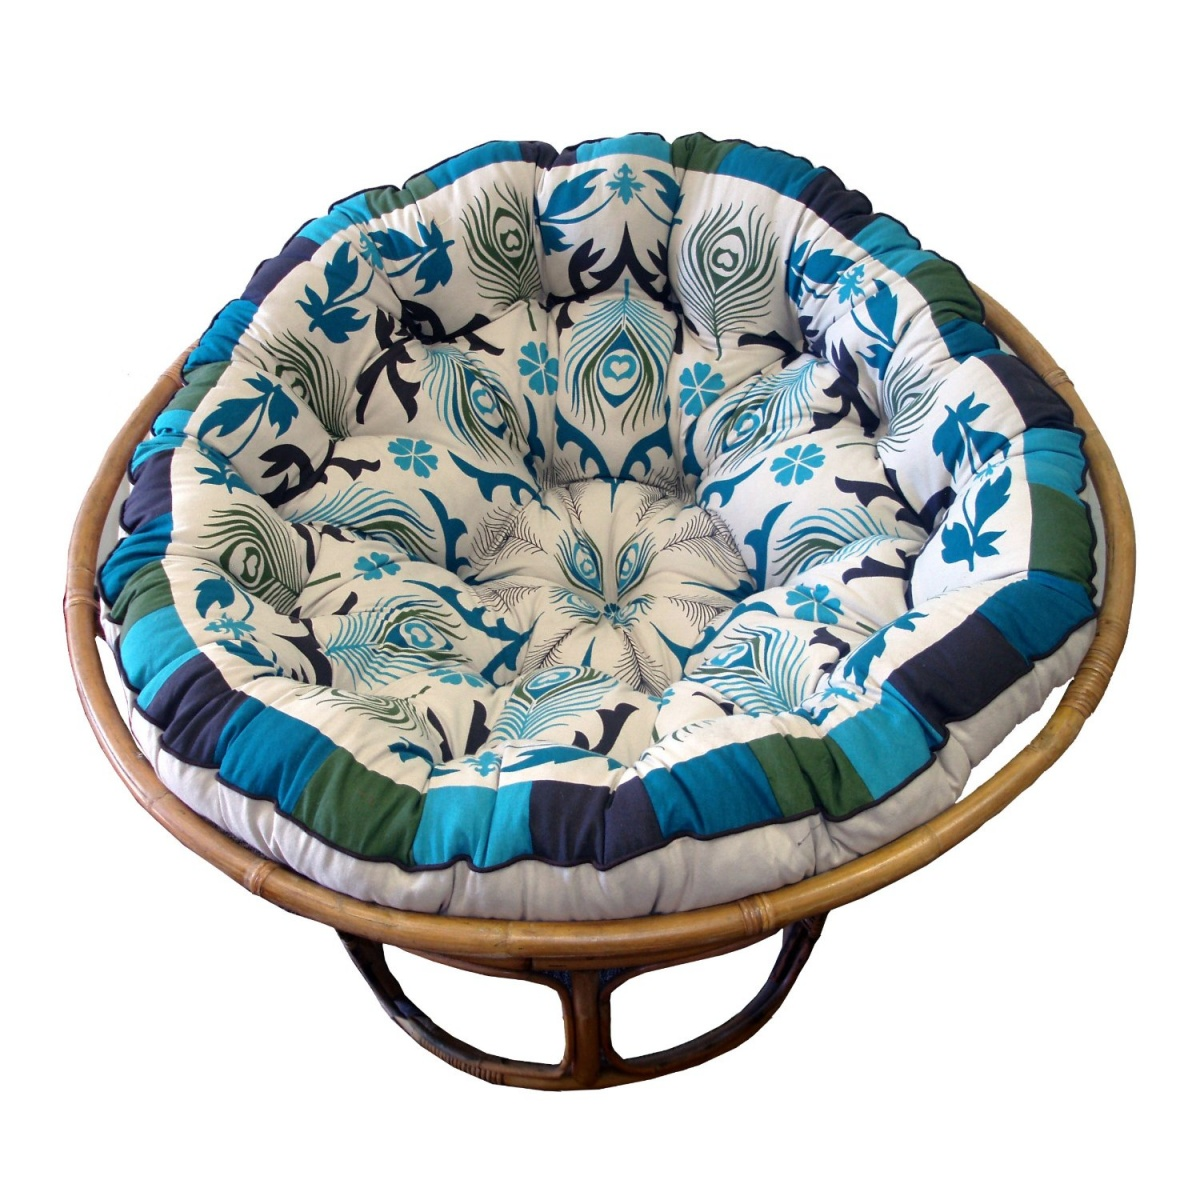 Charming Mocca Outdoor Papasan Chair With Floral Pattern Of Cushion Seat For Charming Furniture Ideas